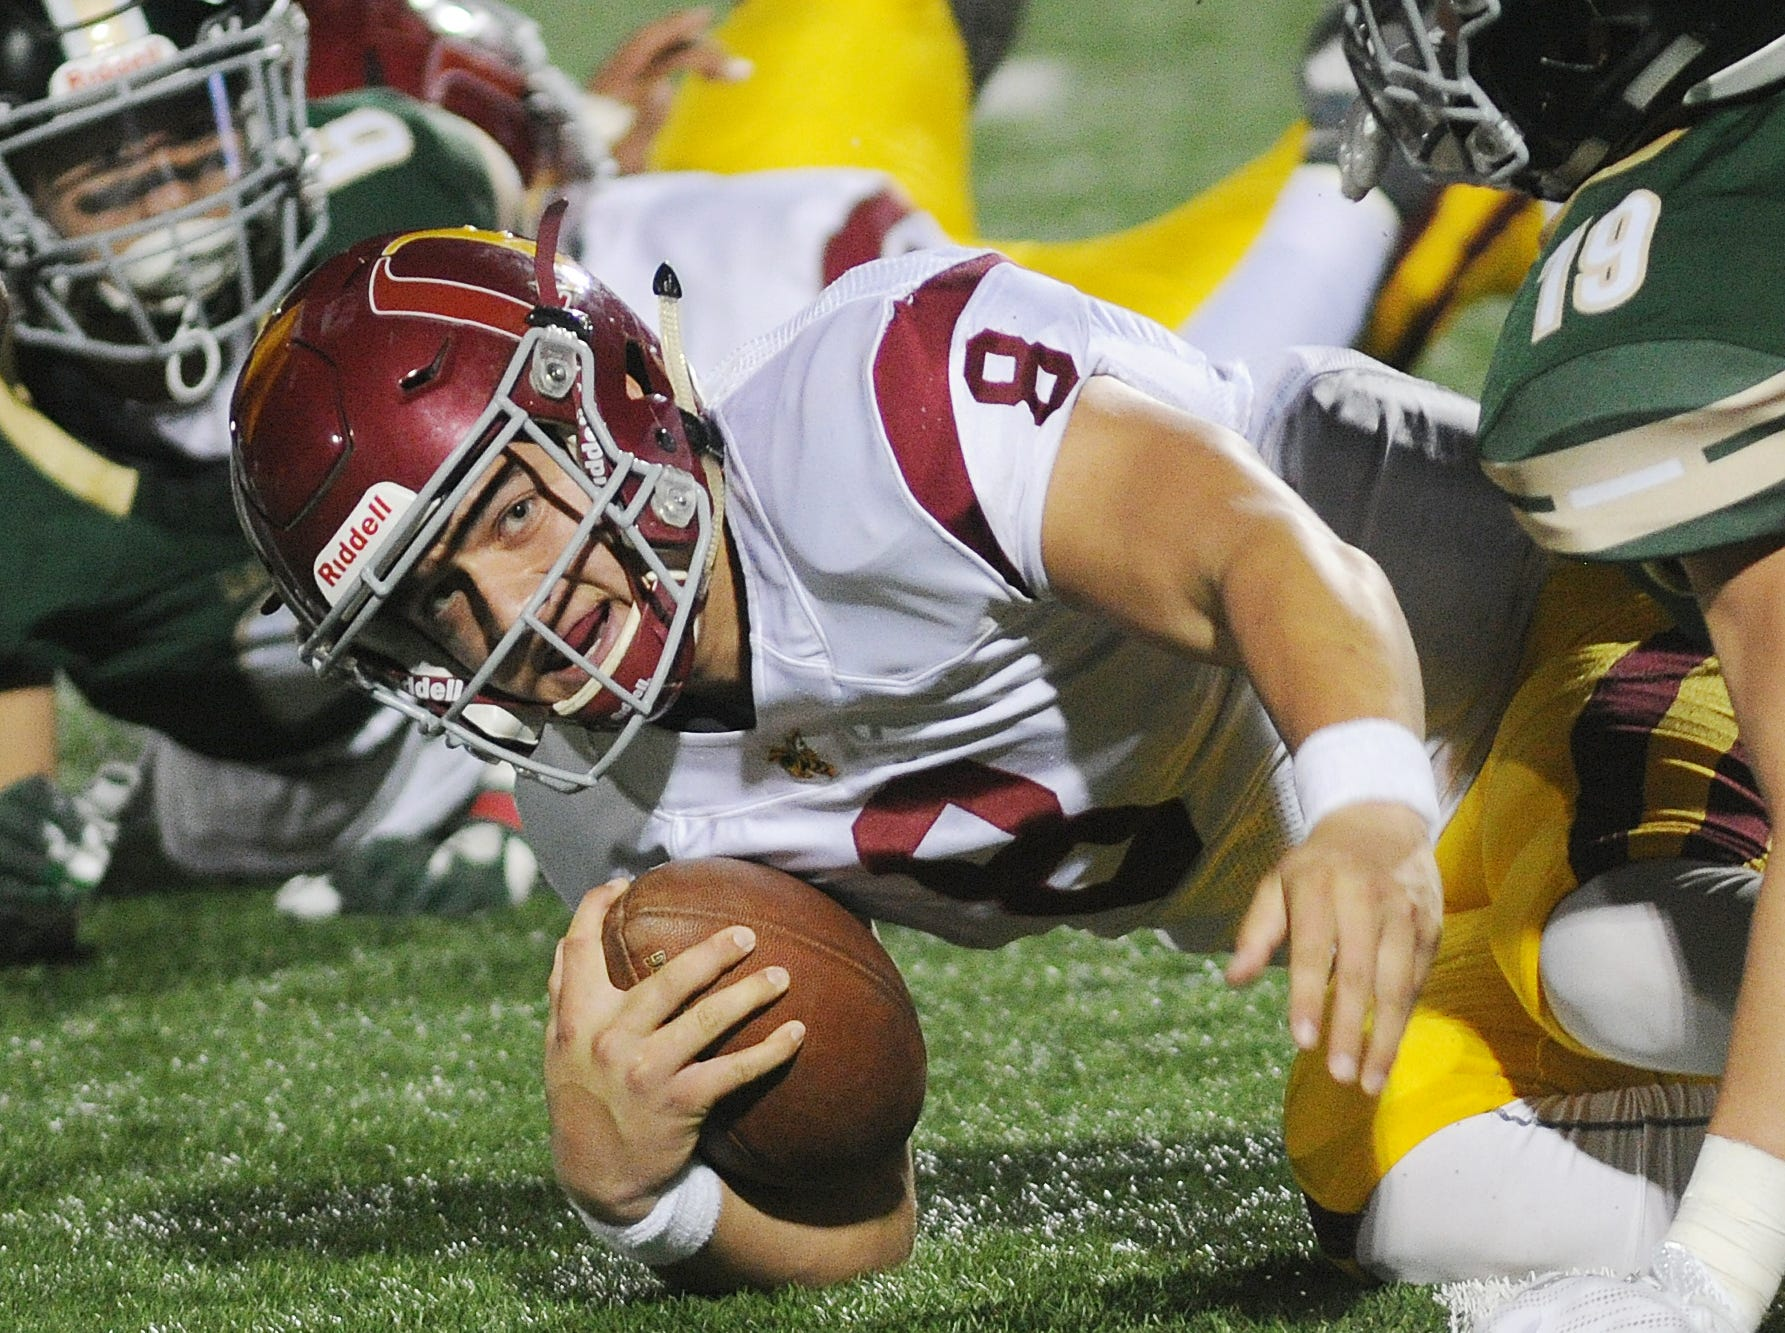 Oxnard quarterback Vincent Walea is sacked during the CIF-Southern Section Division 6 championship game at Covina District Stadium on Saturday night. Oxnard lost to South Hills, 24-13.